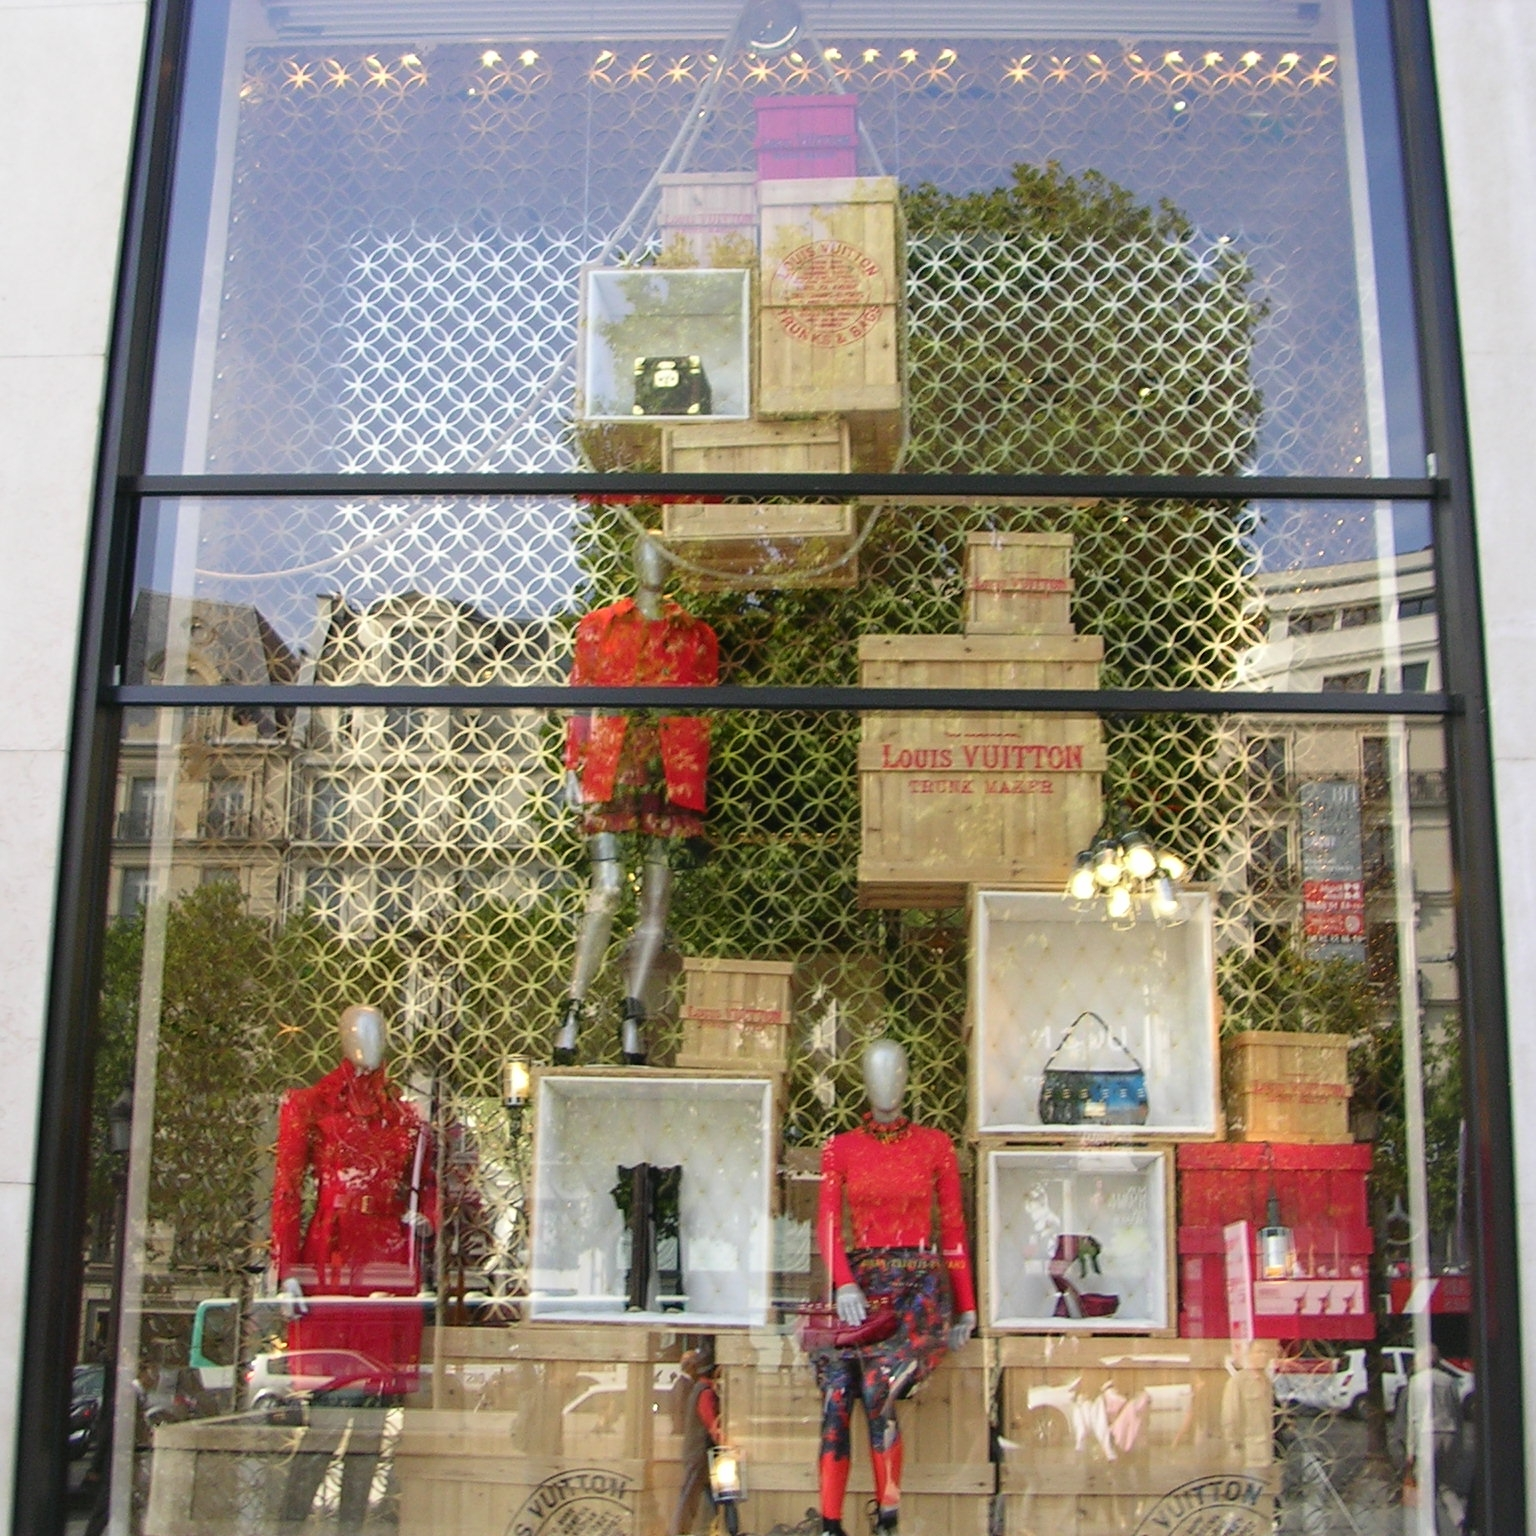 Louis Vuitton, Champs Elysee, Paris by The Doubtful Traveller